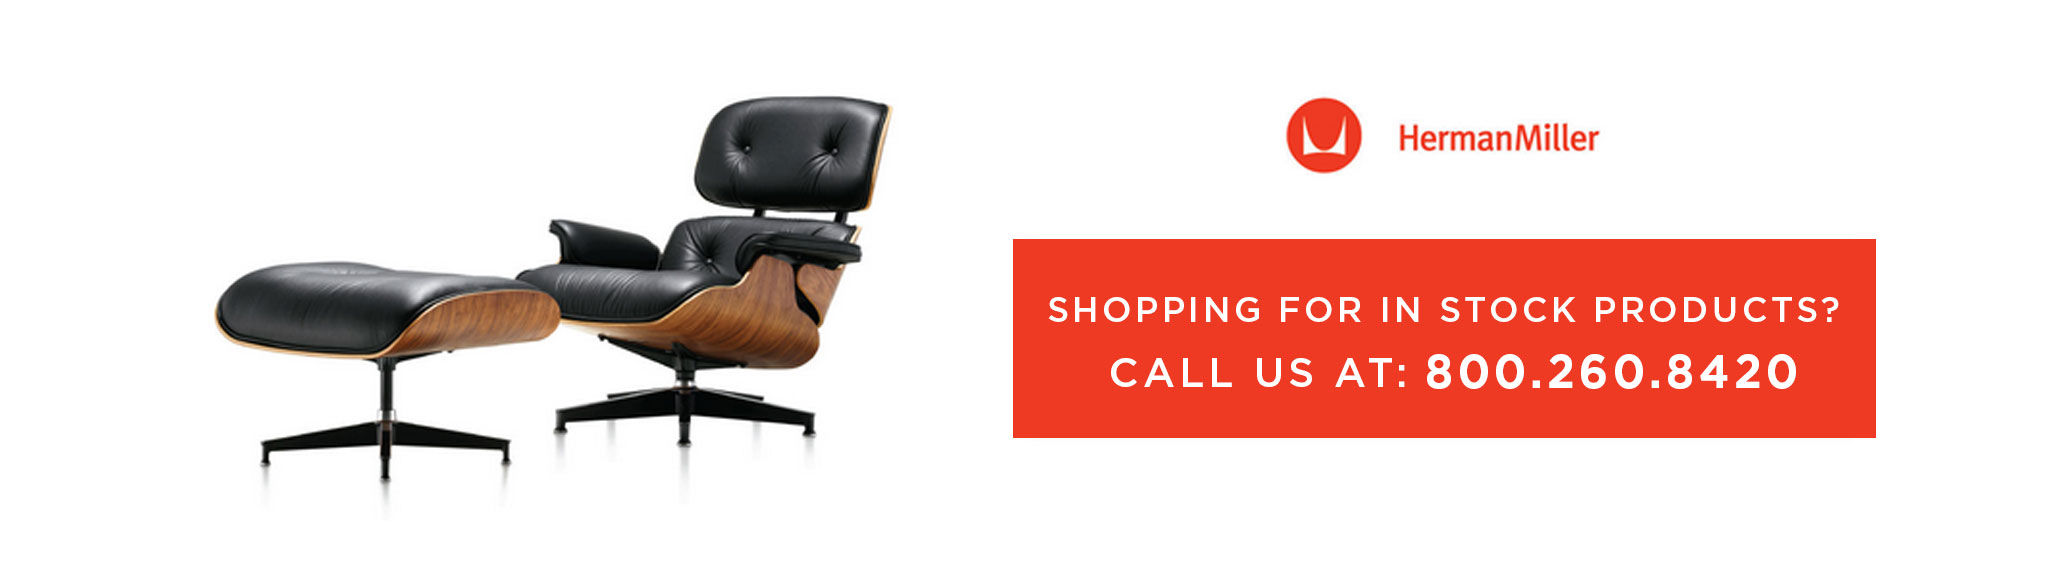 Herman Miller products in stock. Shop now.